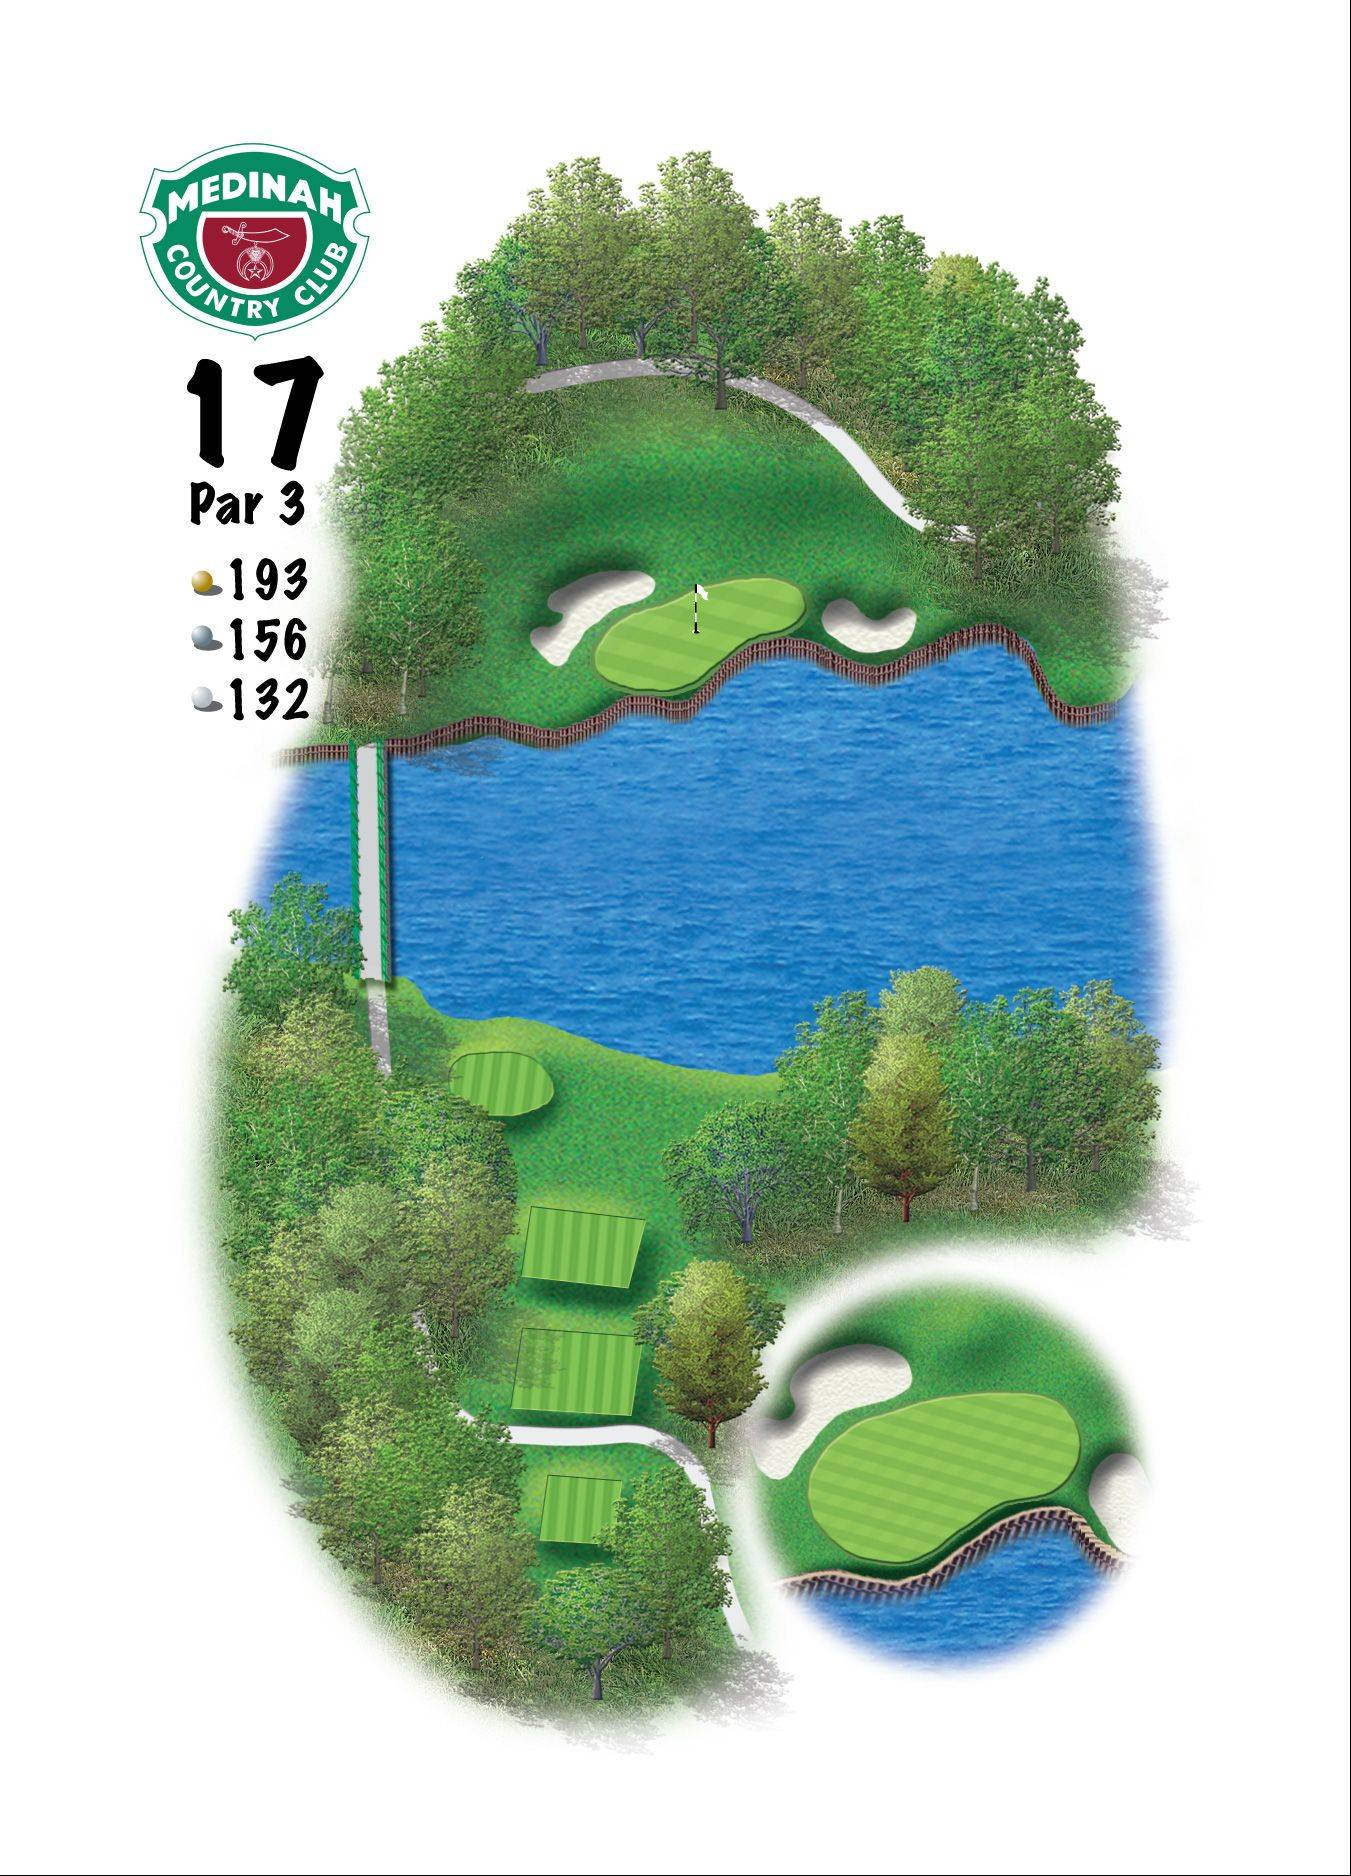 Hole 17 of the Ryder Cup course at Medinah. 193 yards/176 meters, Par-3, The key here will be the wind off Lake Kadijah, and the nerves of trying to win a match to capture the 39th Ryder Cup. Hitting this relatively flat green will be the key. Being long or left will make getting up and down quite difficult.